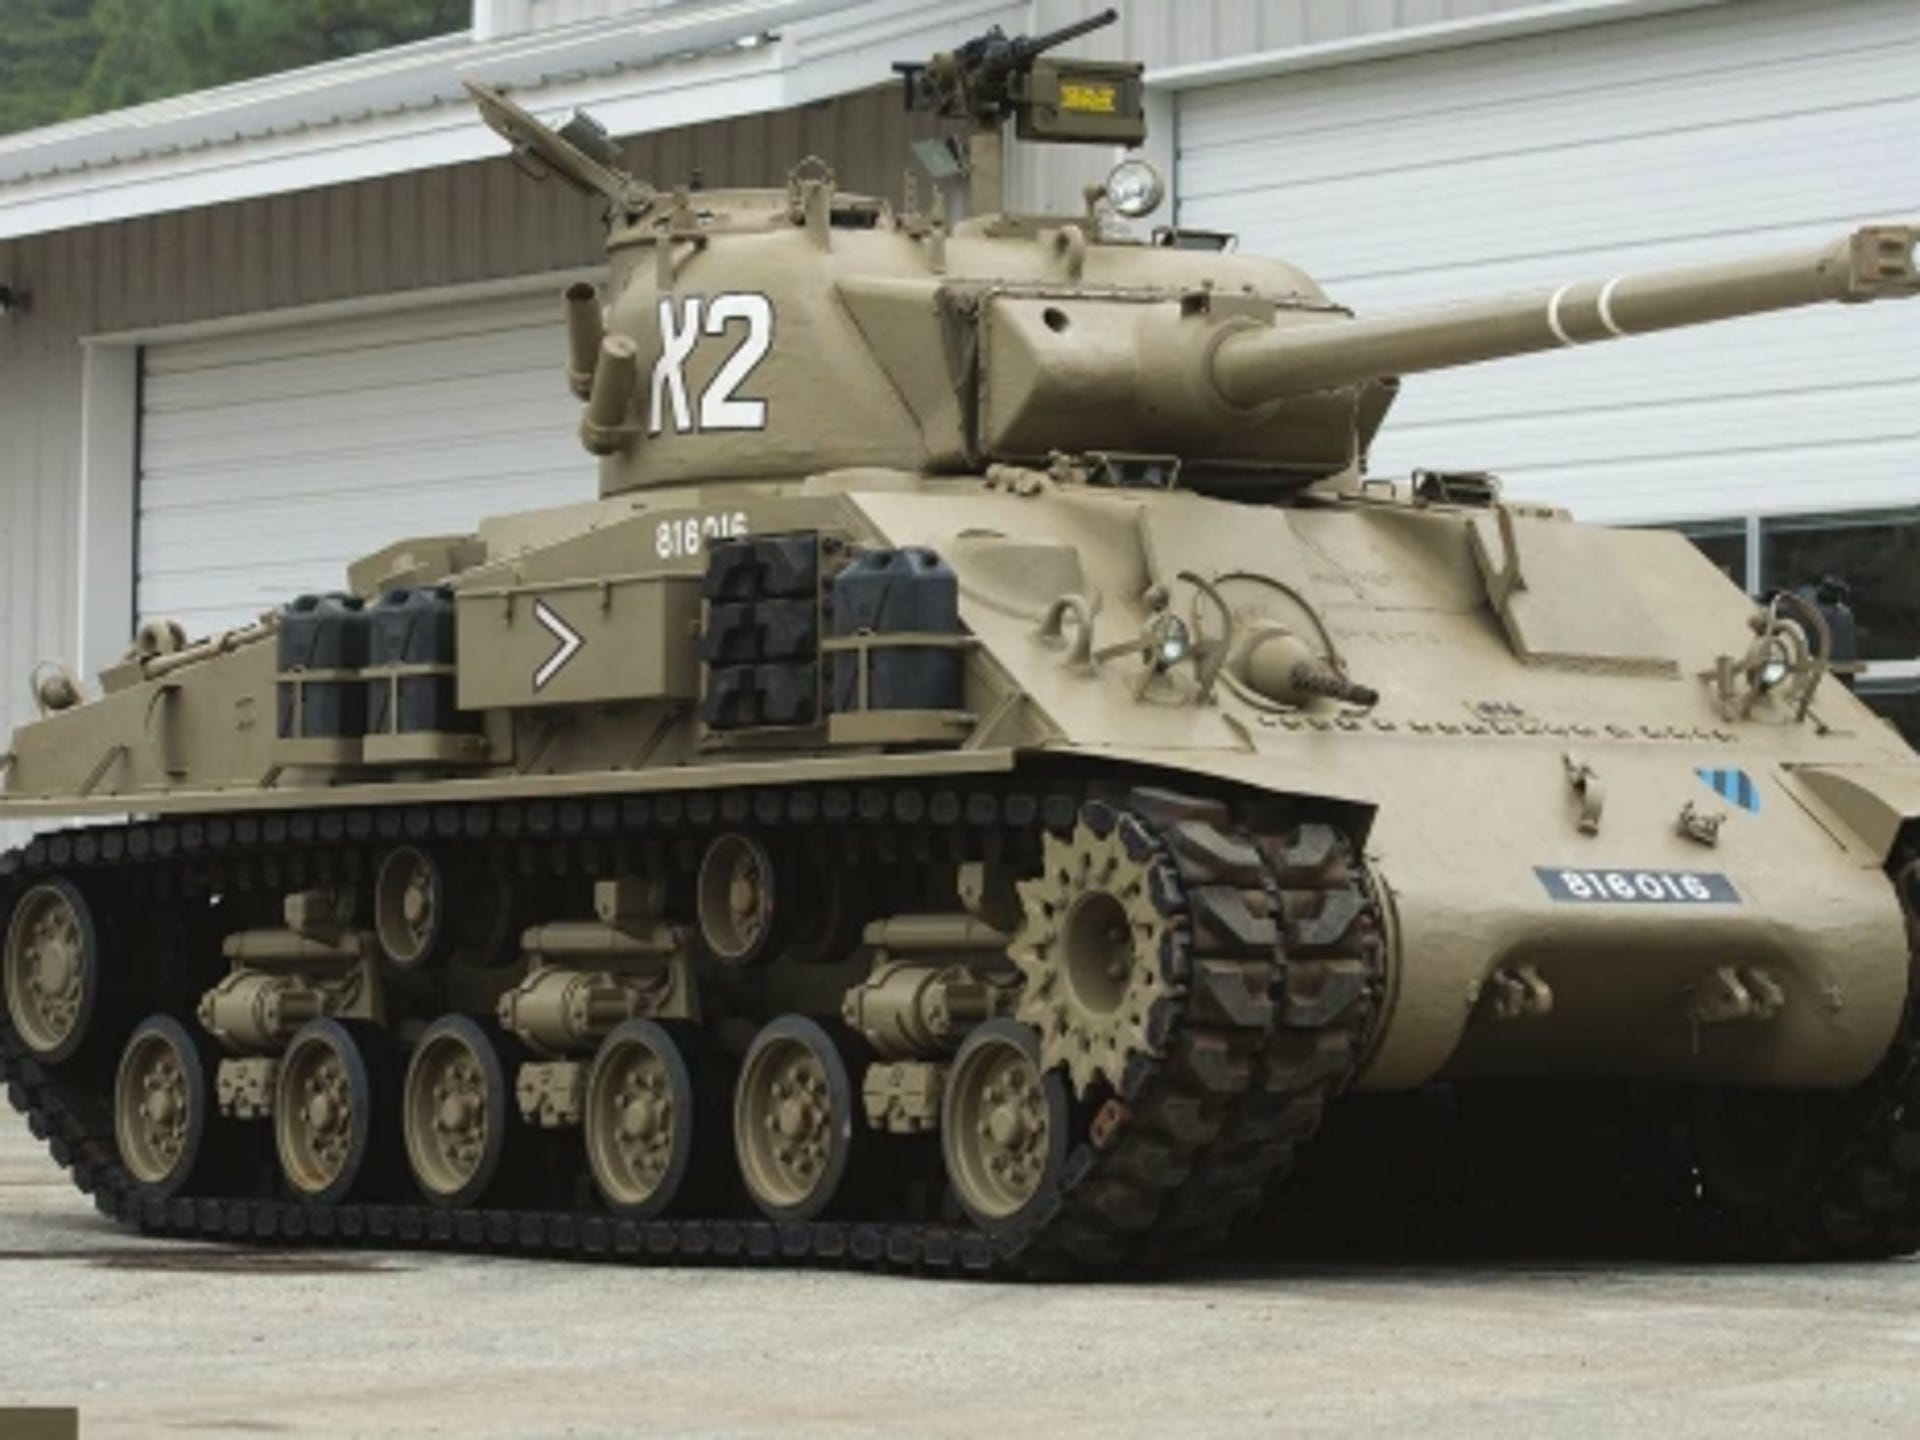 Tanks, missile launchers are part of military vehicle auction